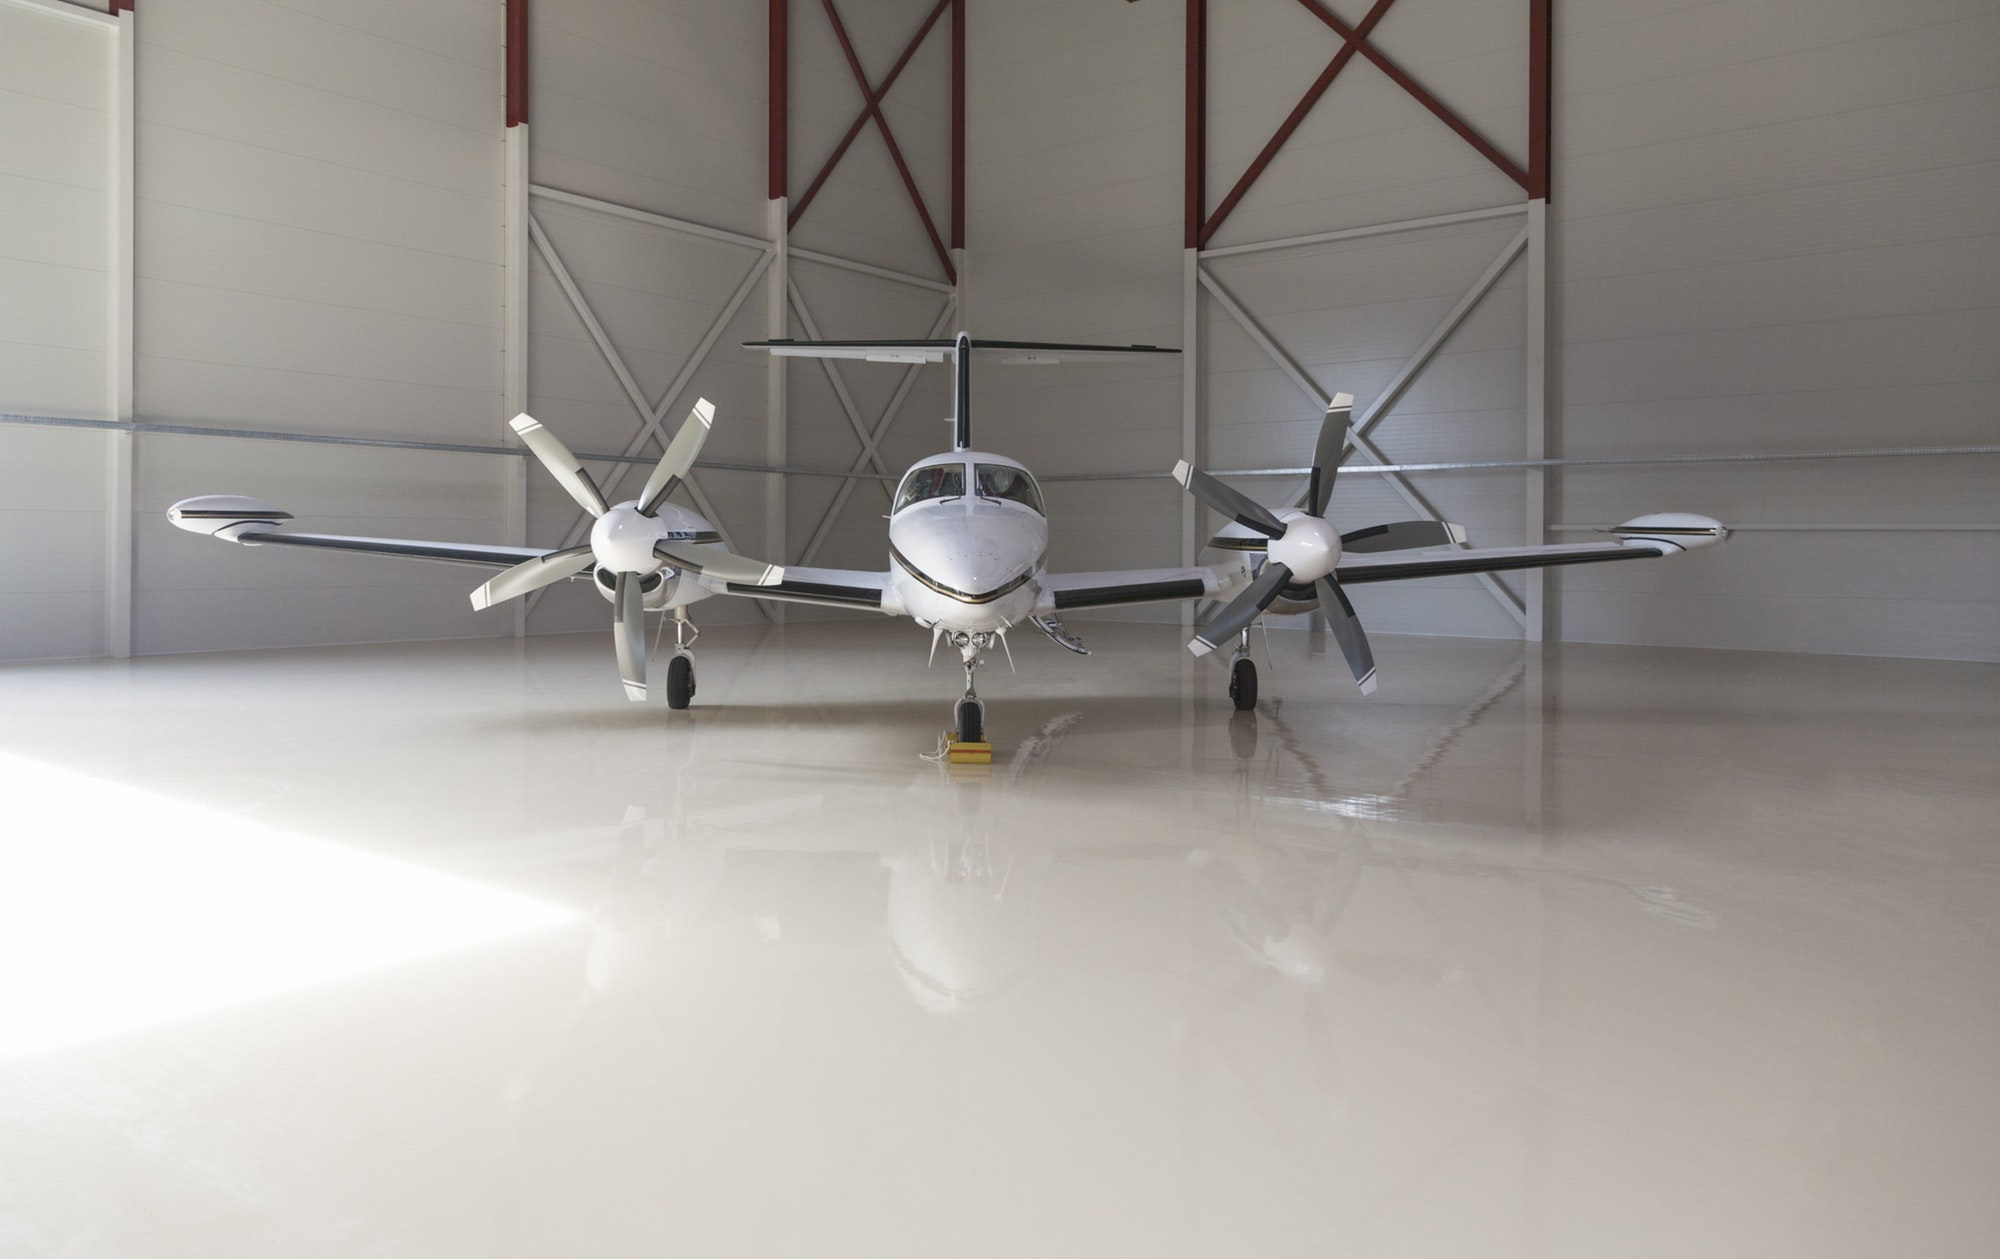 Small aircraft parked in a hangar aircraft lawyer boca raton fl